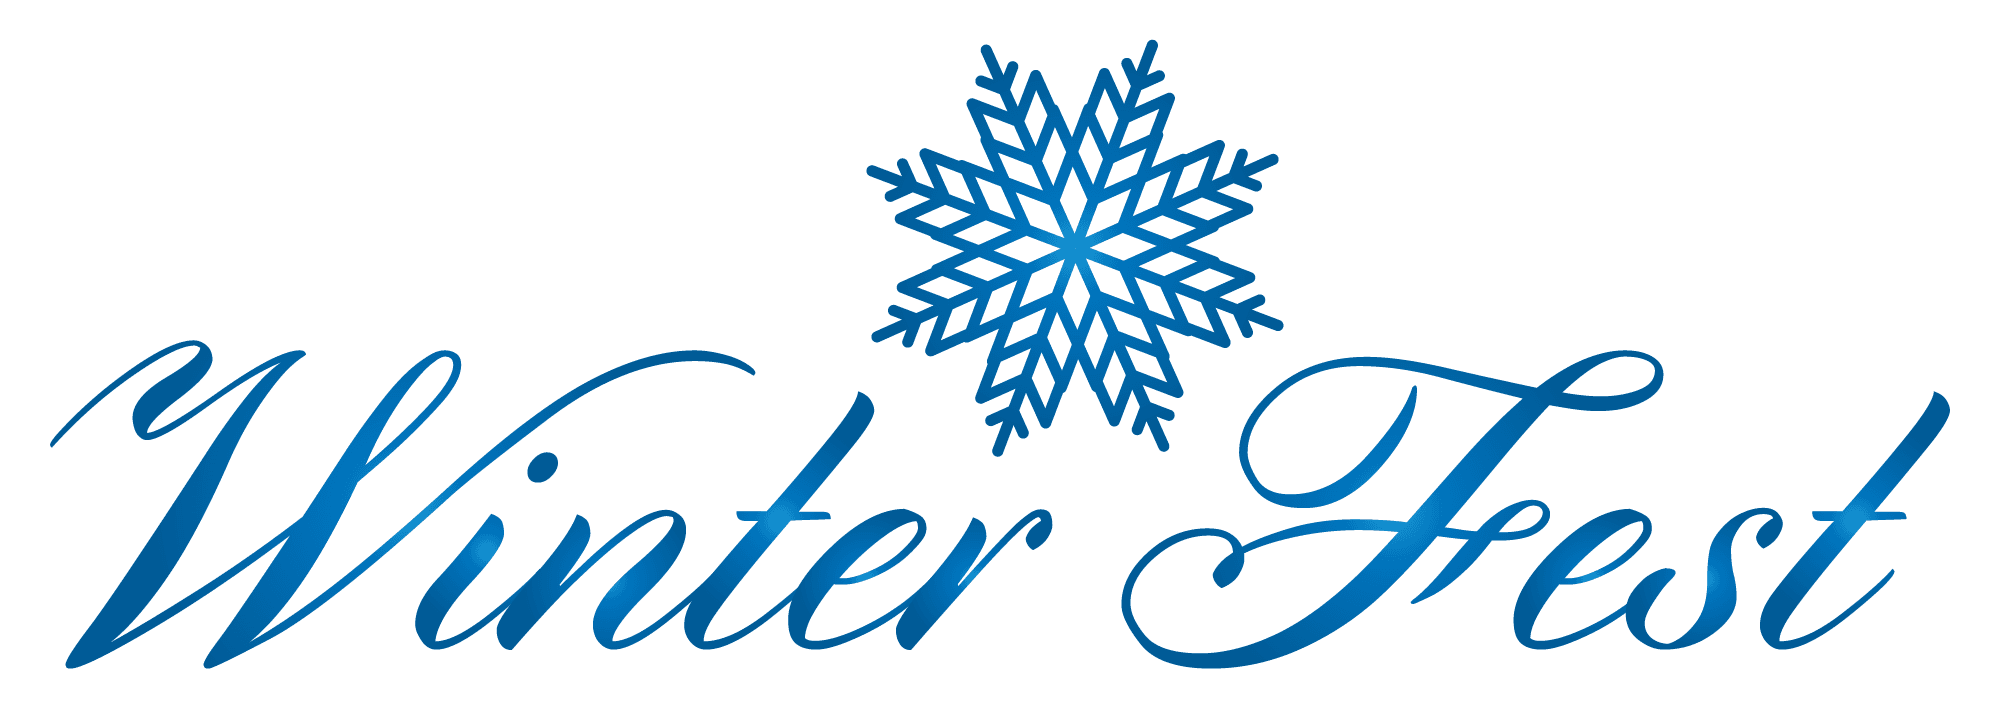 Winter-Fest-logo-110115-color-transparent-01